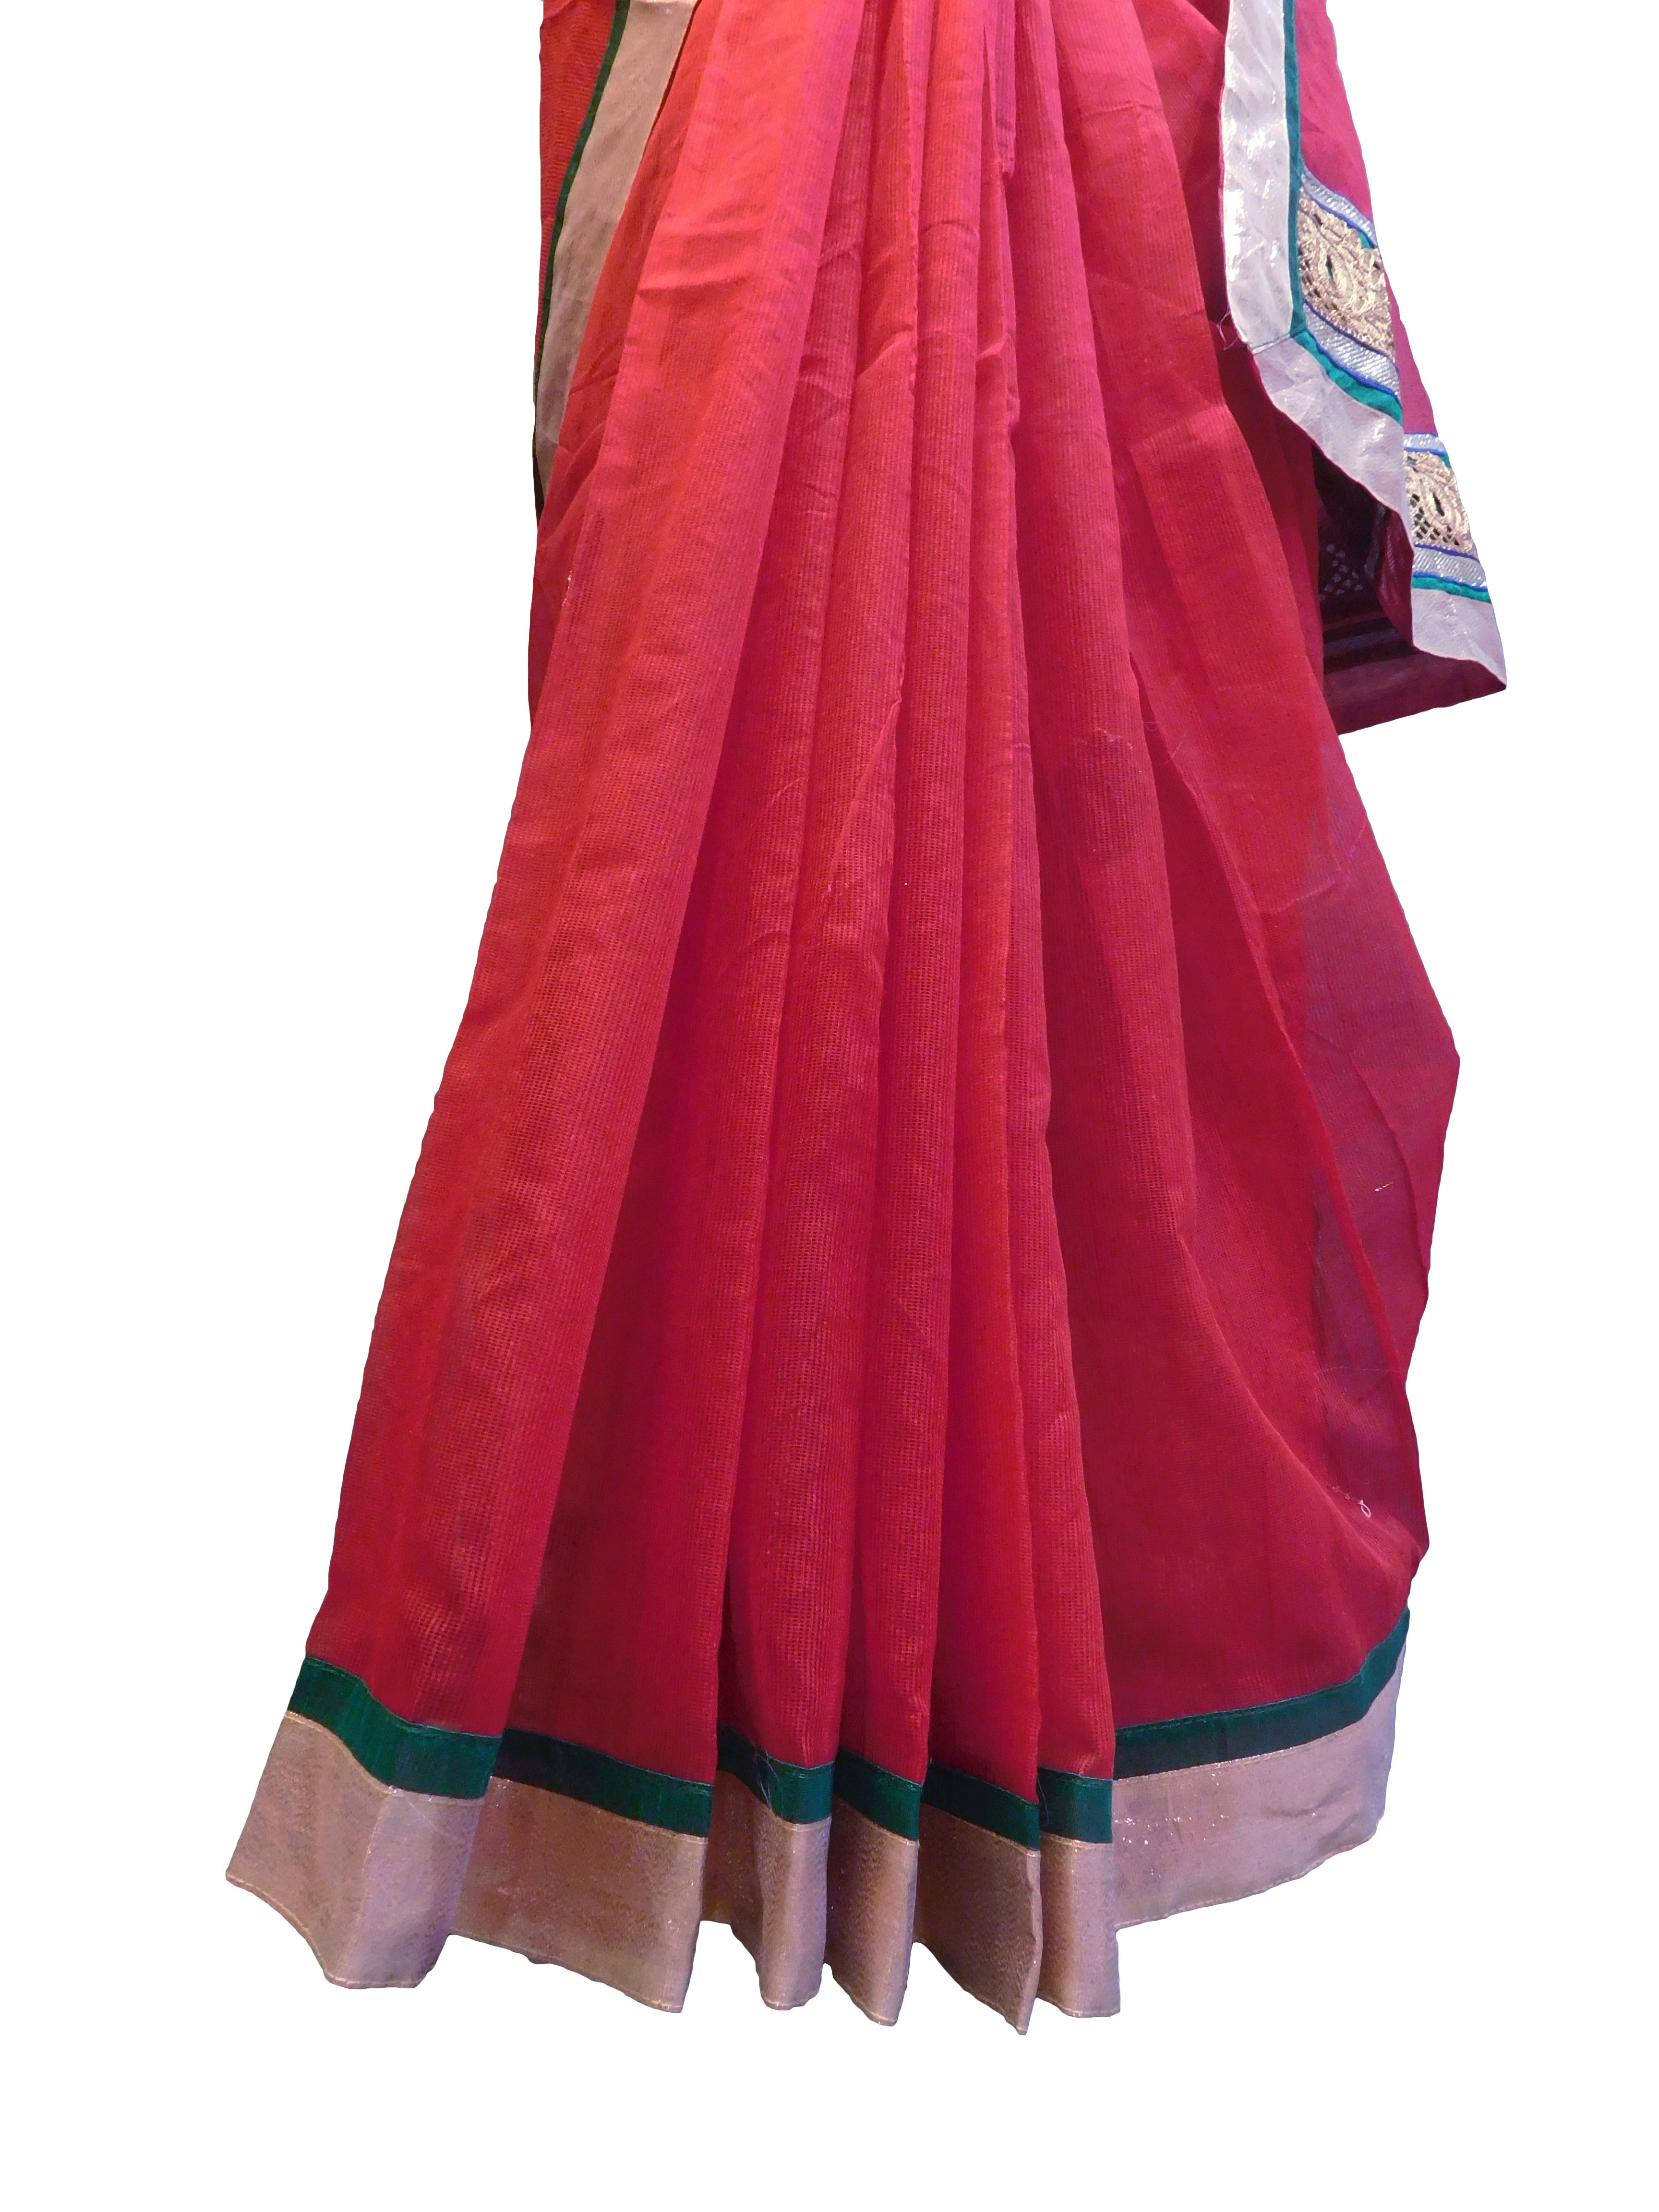 SMSAREE Red Designer Wedding Partywear Supernet (Cotton) Zari & Gota Hand Embroidery Work Bridal Saree Sari With Blouse Piece E822